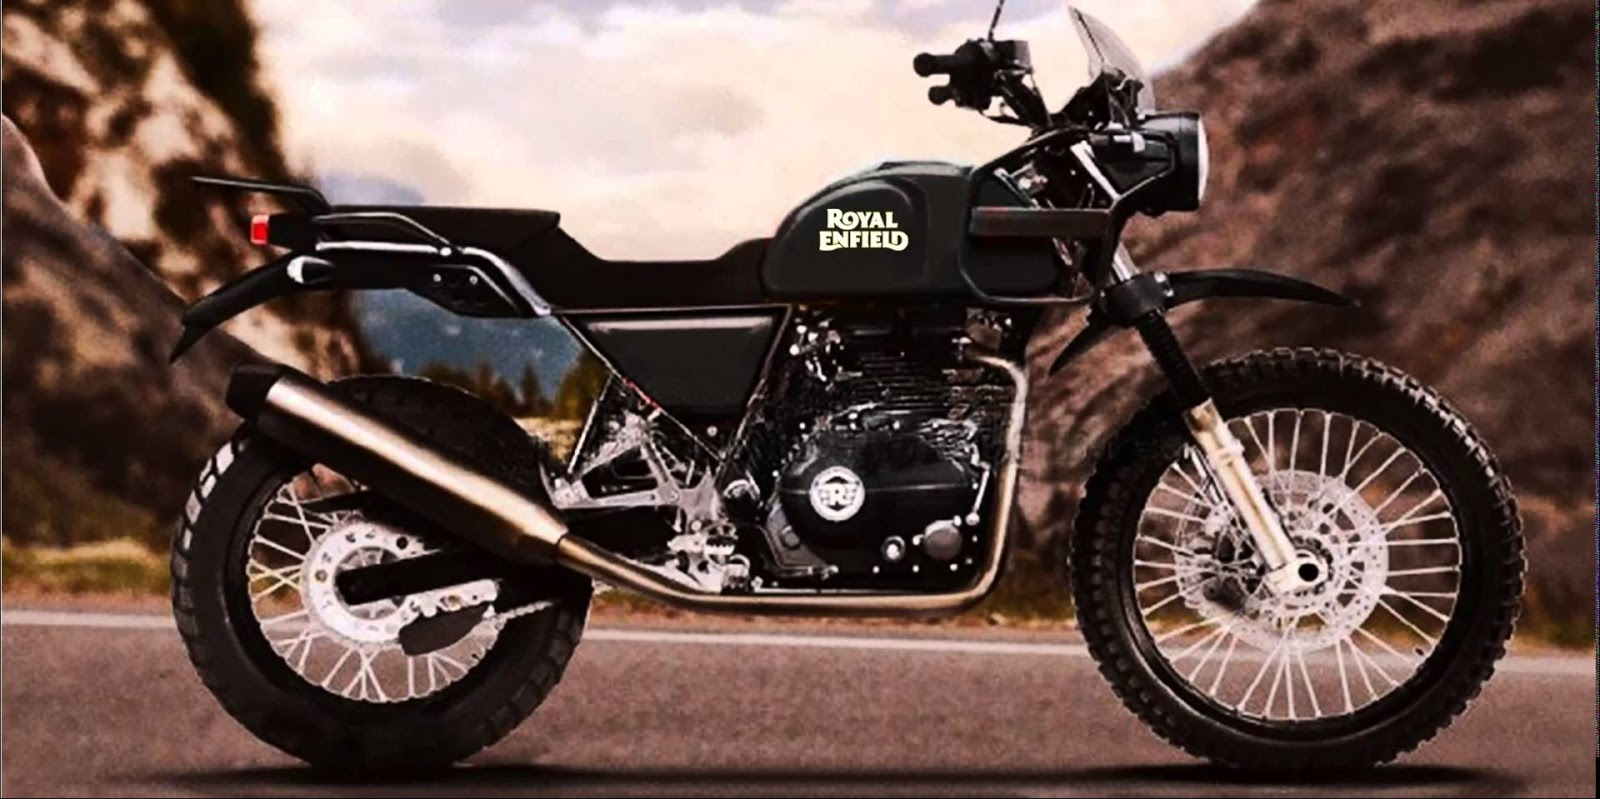 Hd wallpaper royal enfield -  Option Resolution Can You Take Is All Images Royal Enfield S Upcoming Adventure Tourer Is Expected To Be Priced Around Rs 1 5 Lakh To Rs 1 8 Lakh